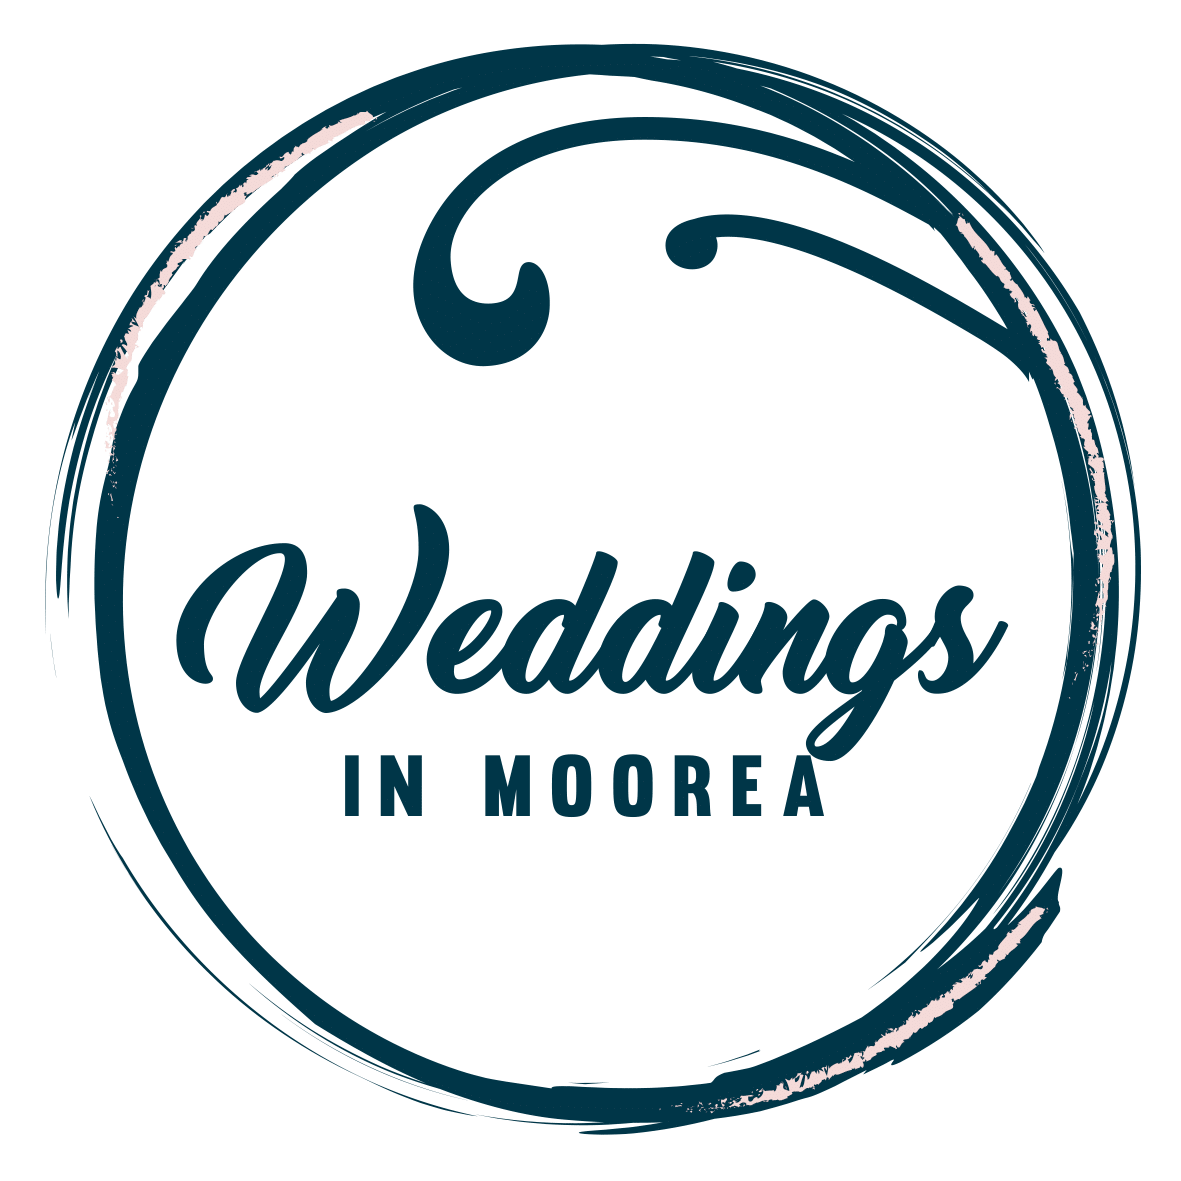 Weddings in Moorea